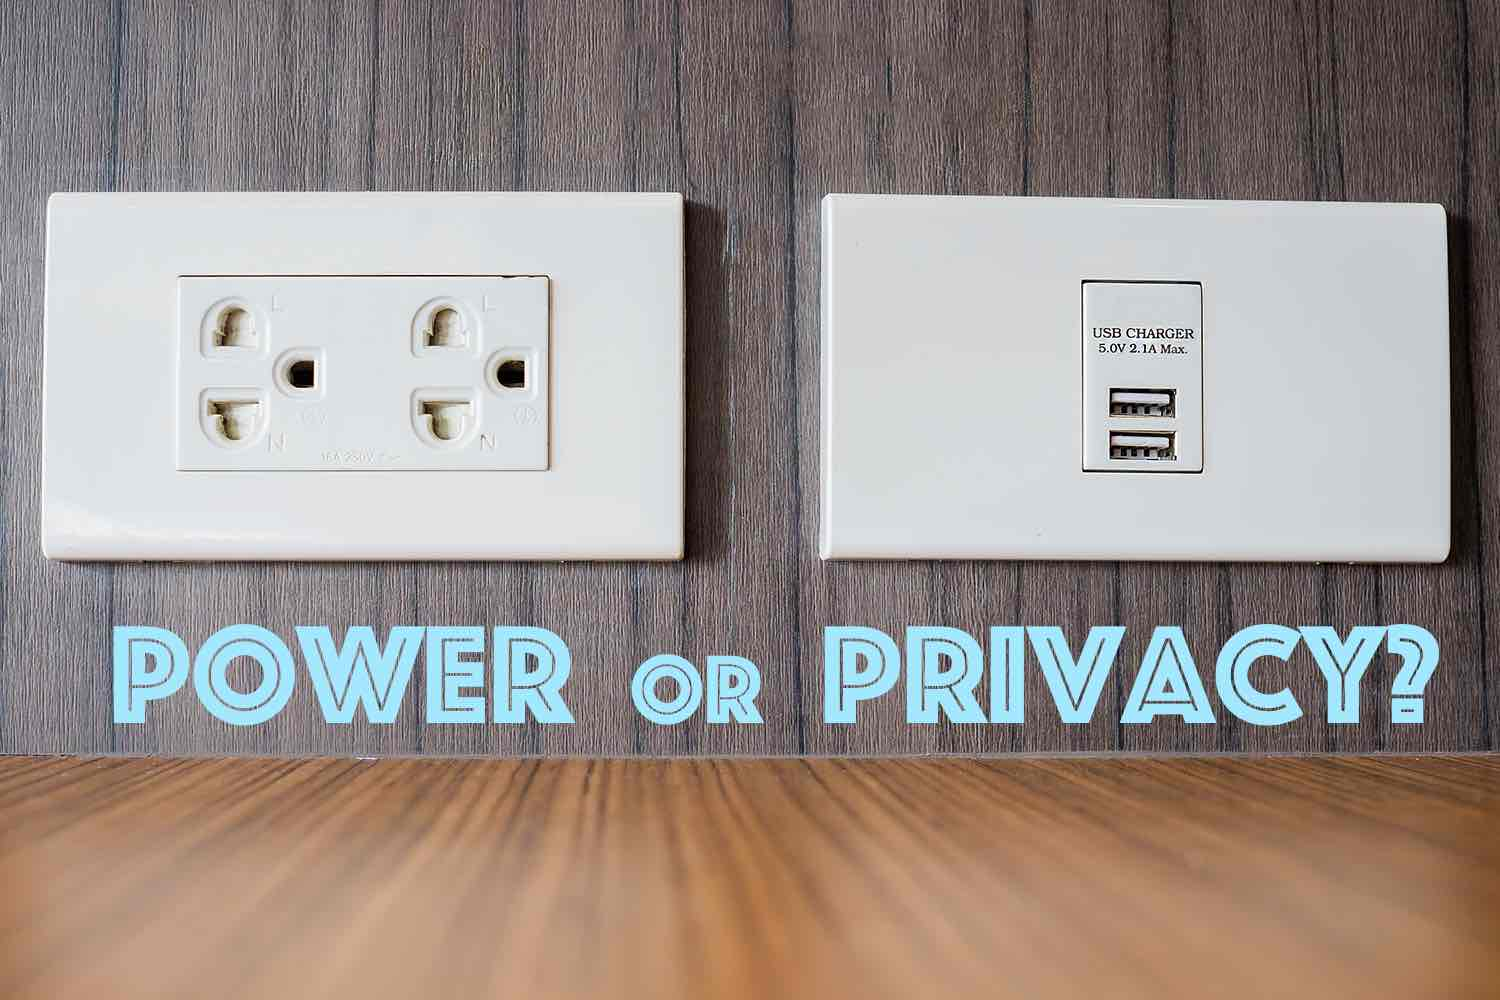 Power or Privacy?